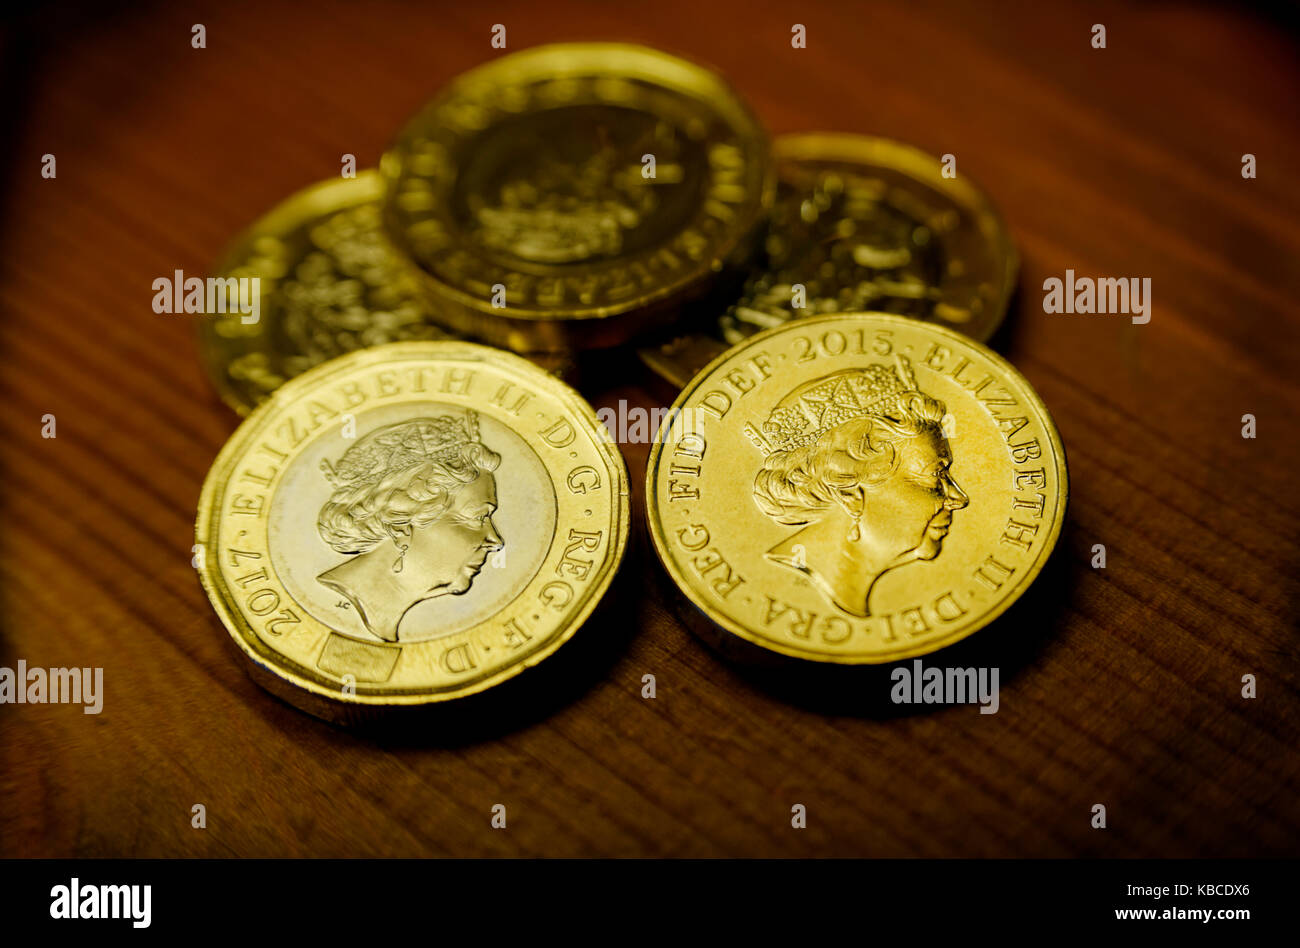 NEW POUND COIN AND OLD POUND COIN  UK - Stock Image